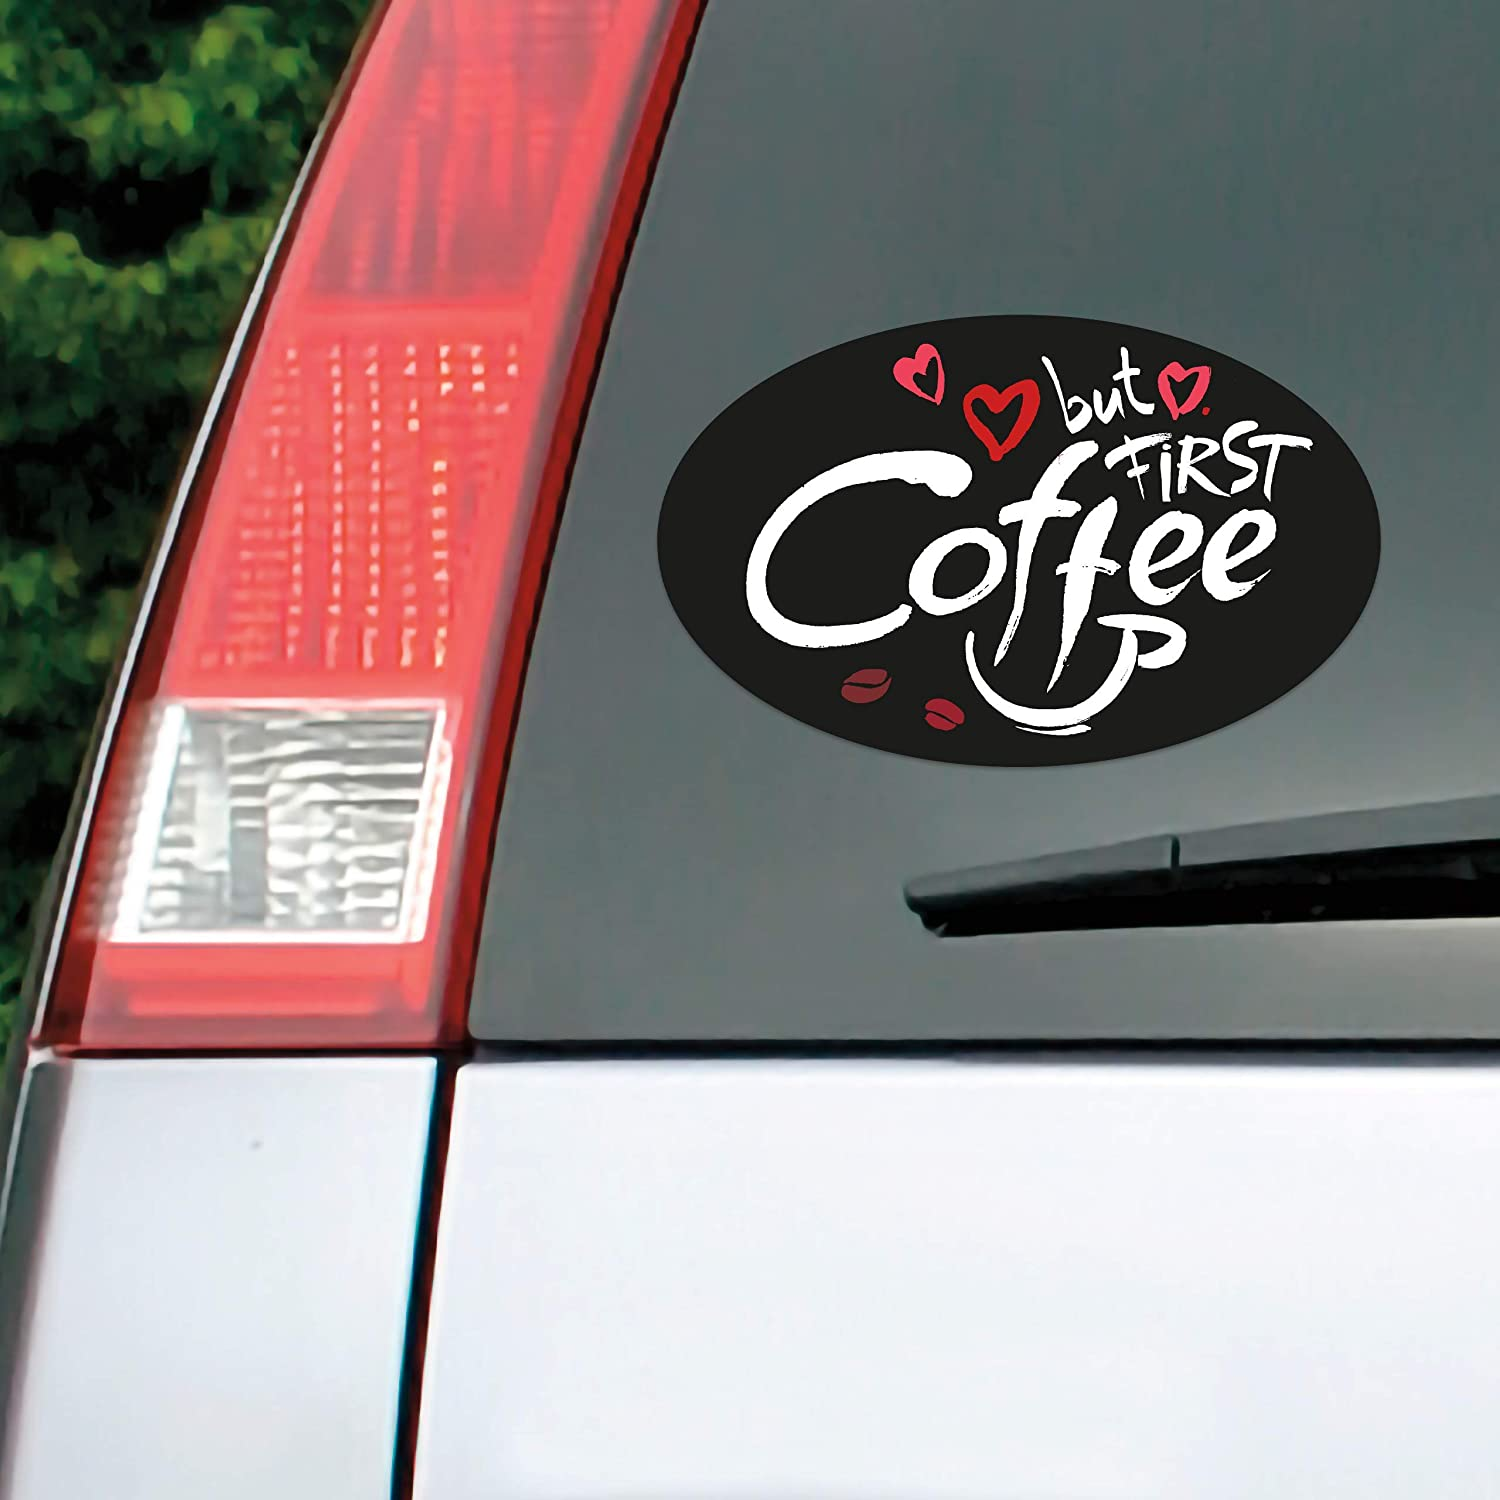 Trendy Euro Oval Sticker and Circle Sticker Weatherproof and Colorful Decal Stickers with Cute and Fun Coffee 3 Pack Vinyl Car Stickers Bumper Sticker and Ice Cream Design. Donuts